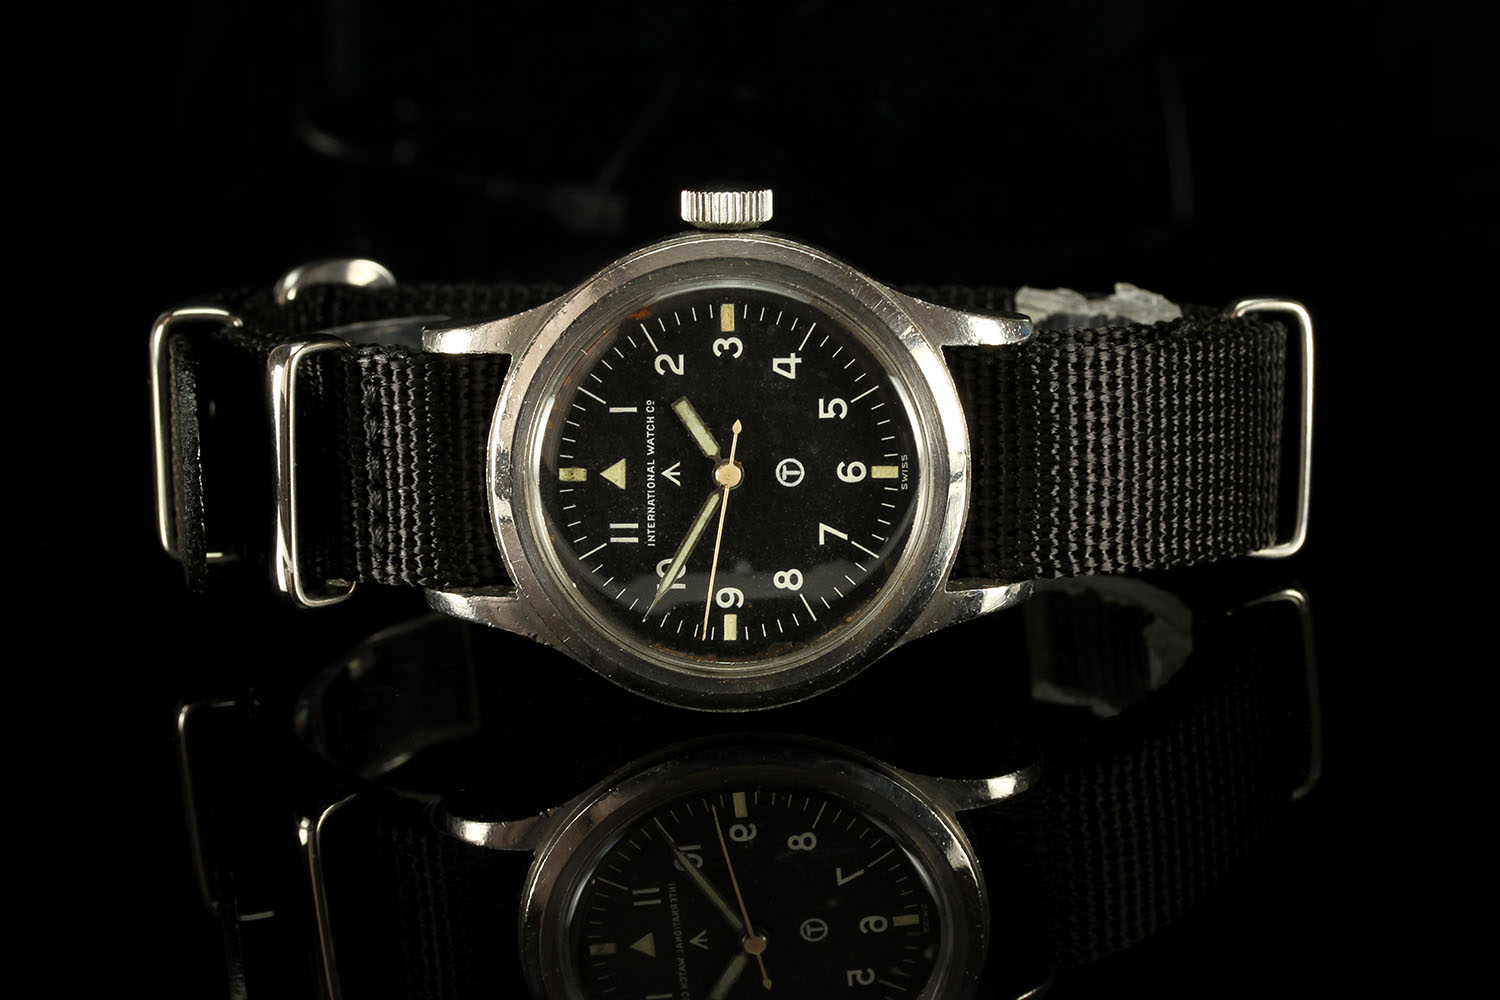 GENTLEMENS INTERNATIONAL WATCH COMPANY BRITISH MILITARY WRISTWATCH, circular black tritium dial with